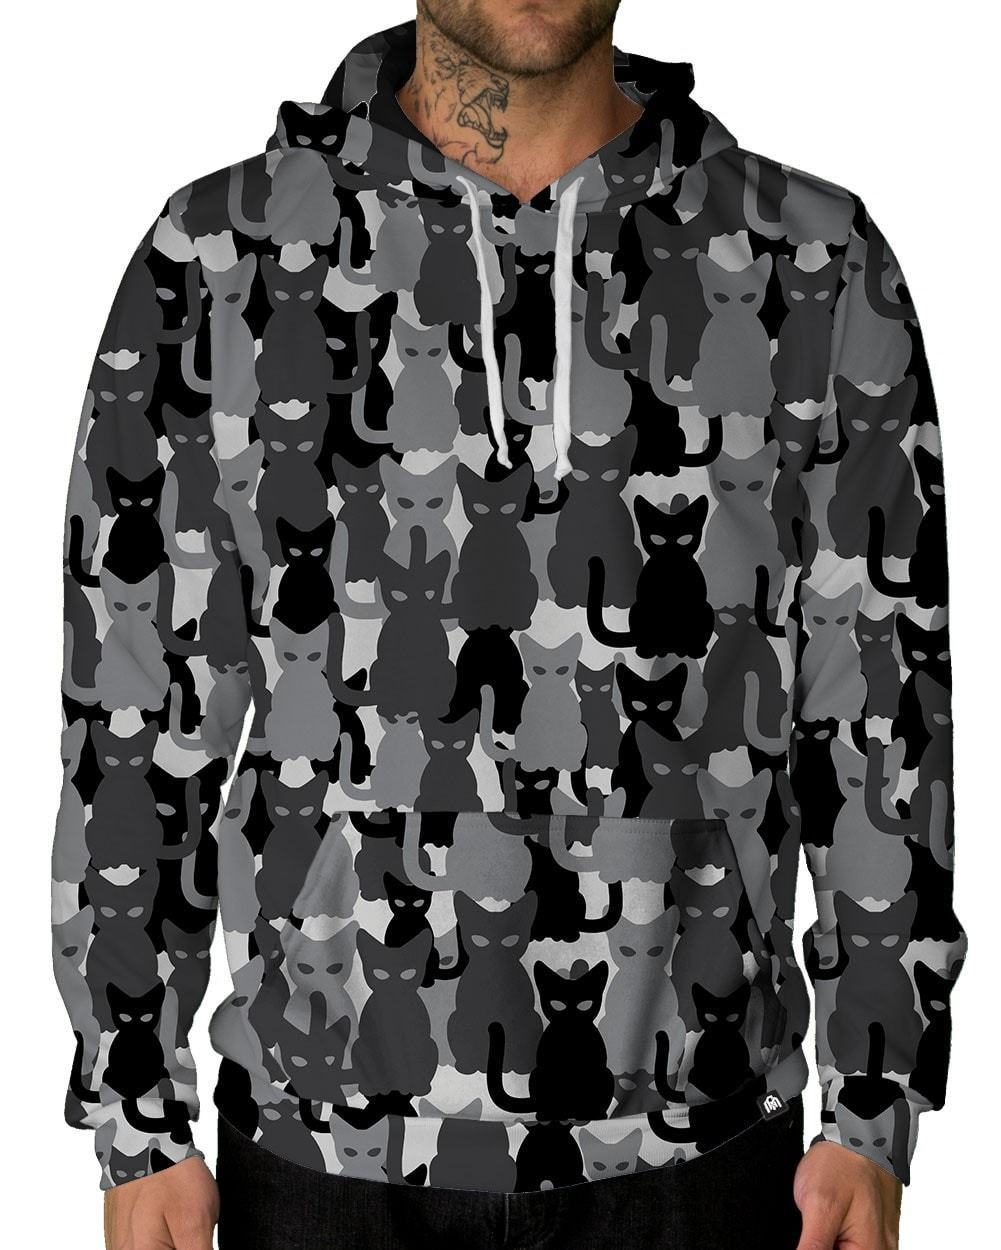 Black Camo Cats Unisex Hoodie-male front